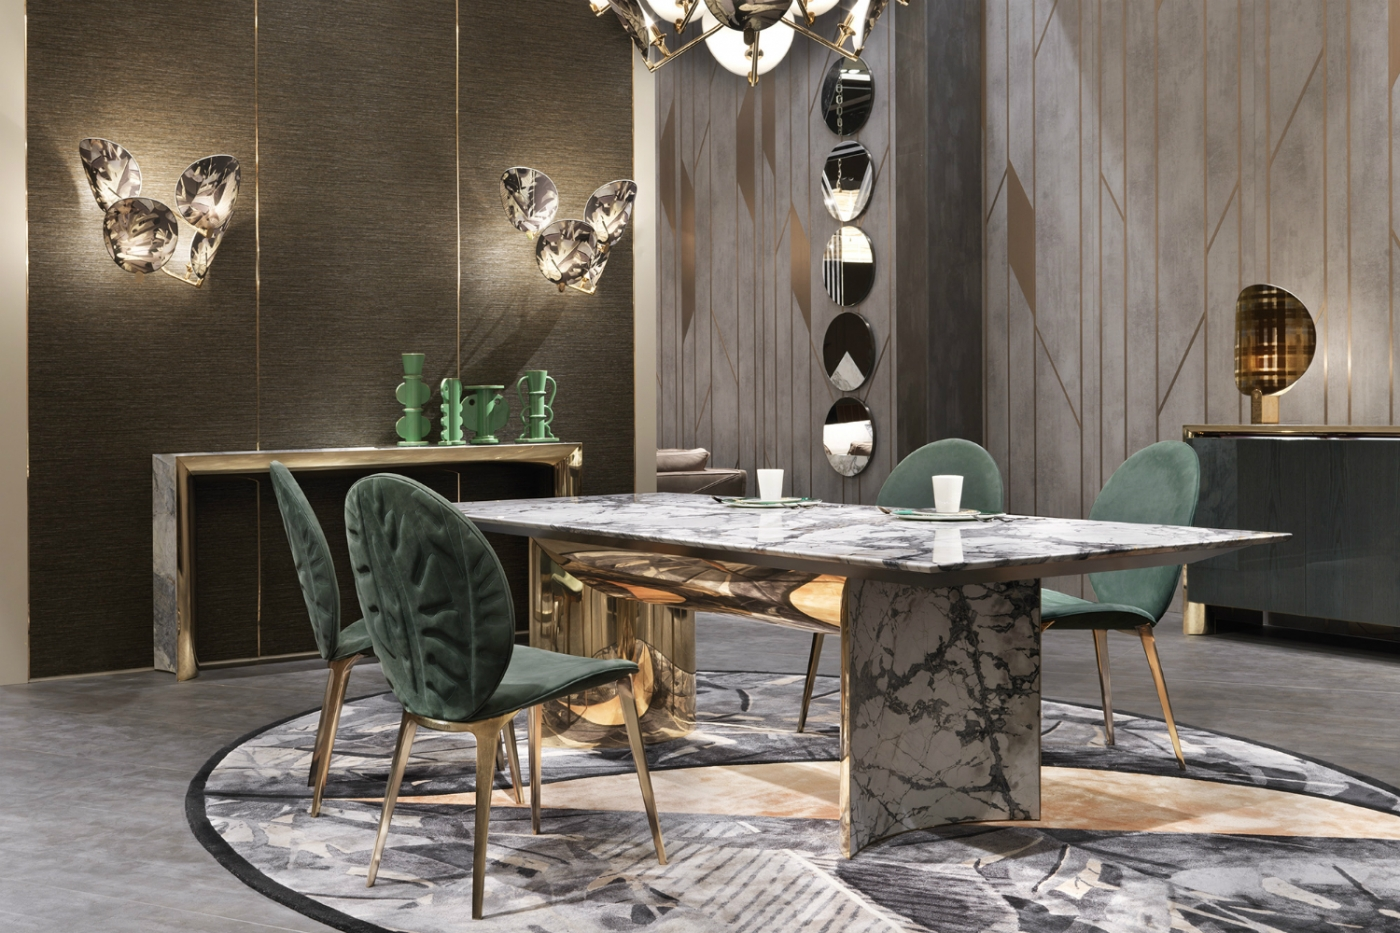 marble dining tables Precious Marble Dining Tables For Your Exclusive Home Design Precious Dining Tables For Your Exclusive Home Design feature 1400x933